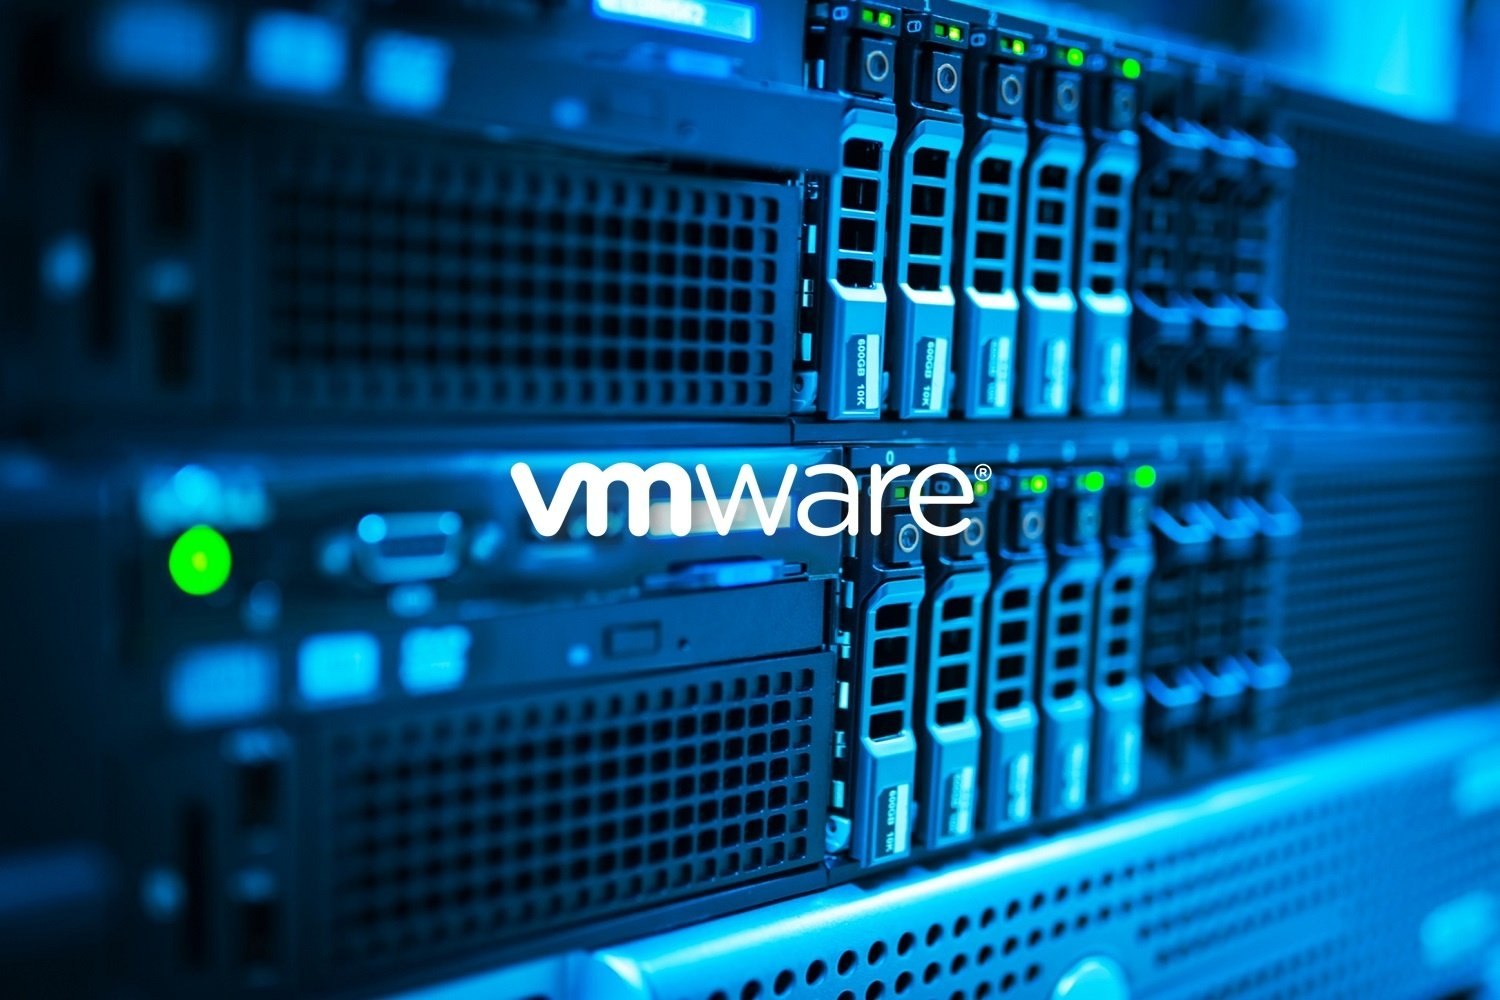 vmware-partner.technologent.jpg